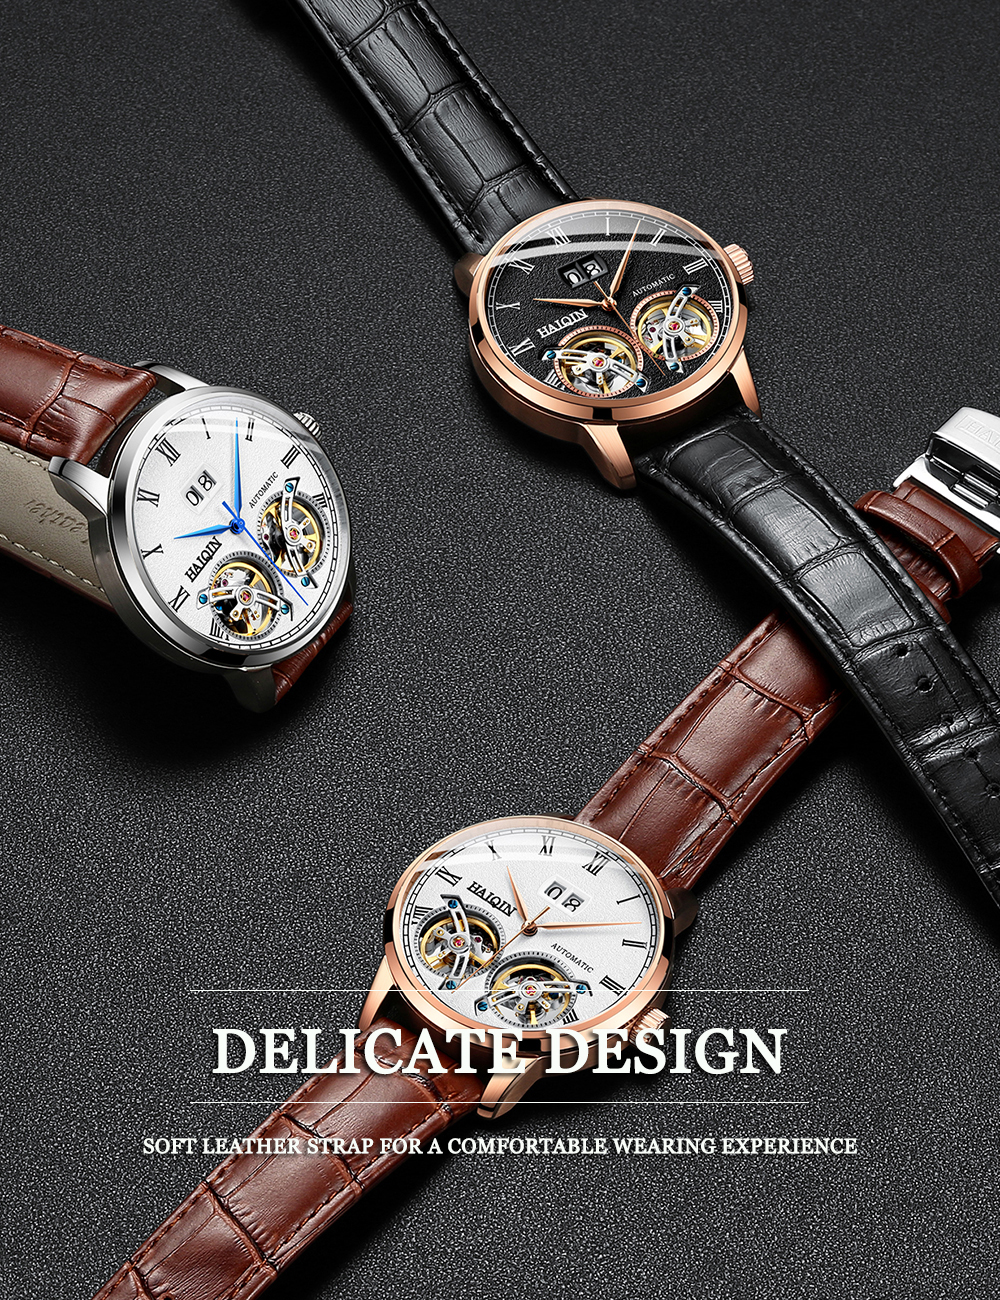 HAIQIN Men's watches Mens Watches top brand luxury Automatic mechanical sport watch men wirstwatch Tourbillon Reloj hombres 2020 HTB1F2C0egmH3KVjSZKzq6z2OXXay